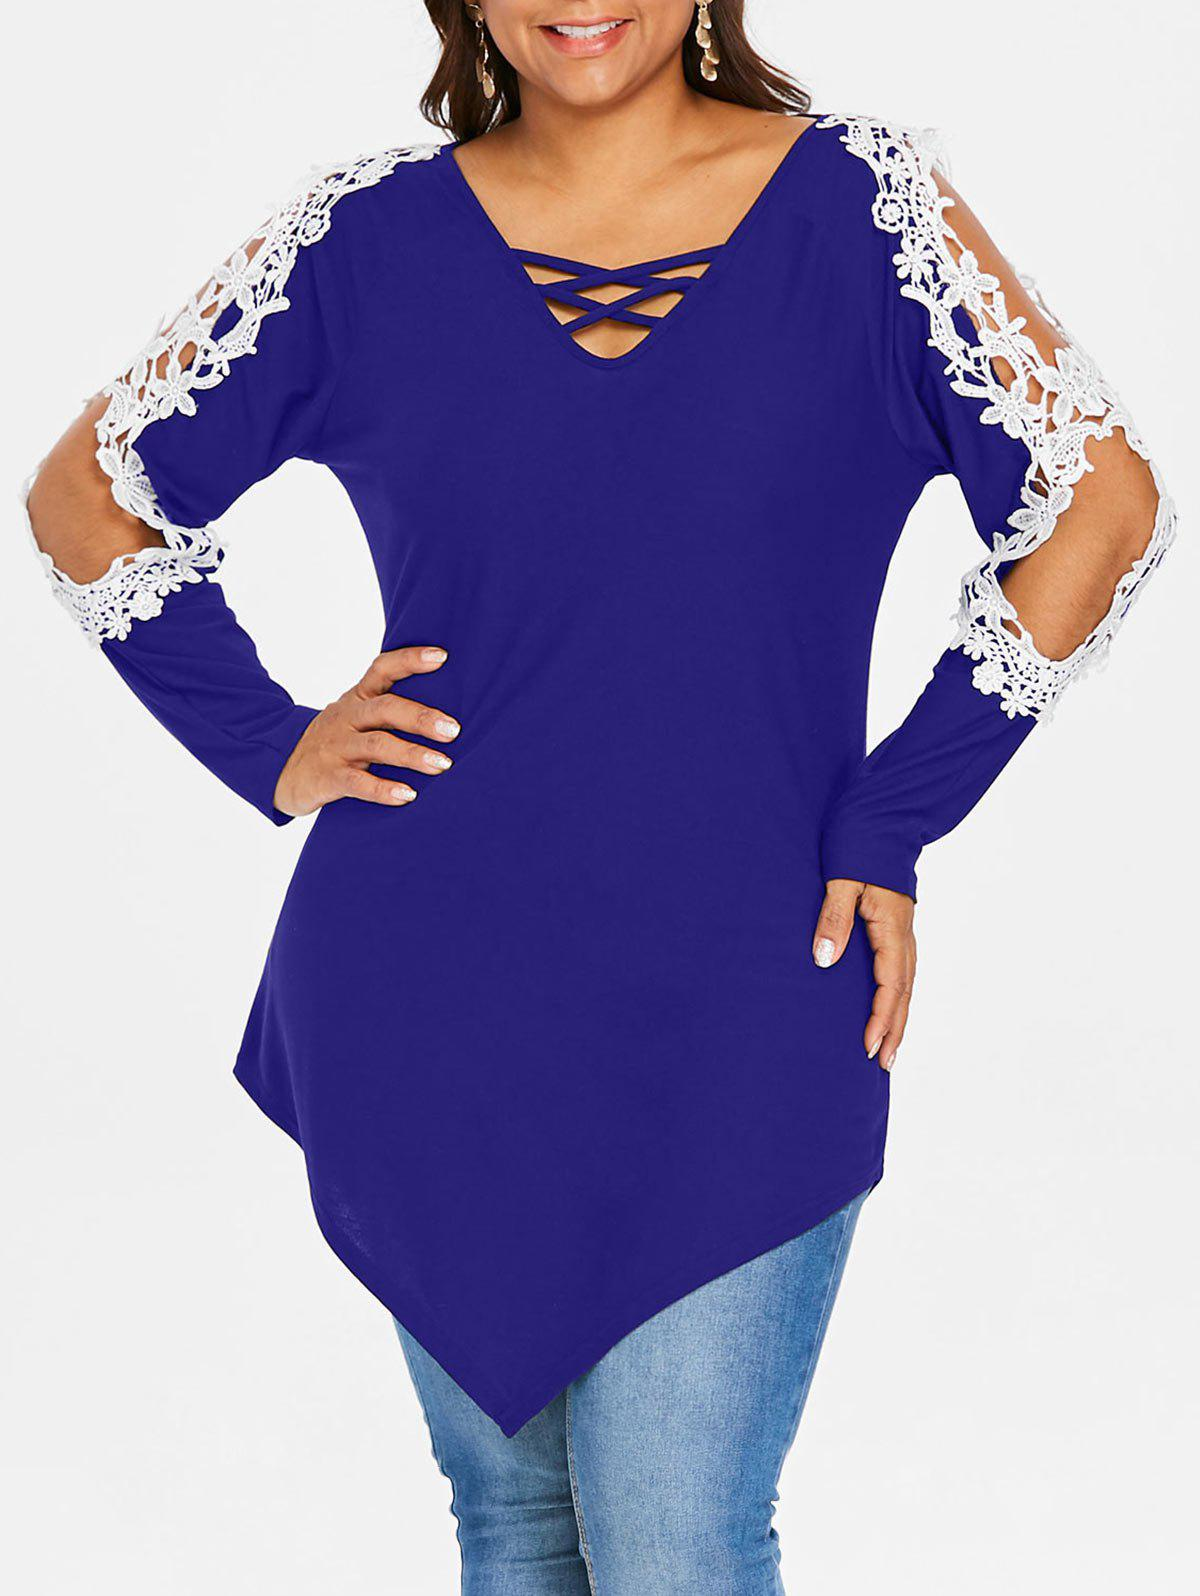 Sale Rosegal Plus Size Lace Applique Criss Cross Top